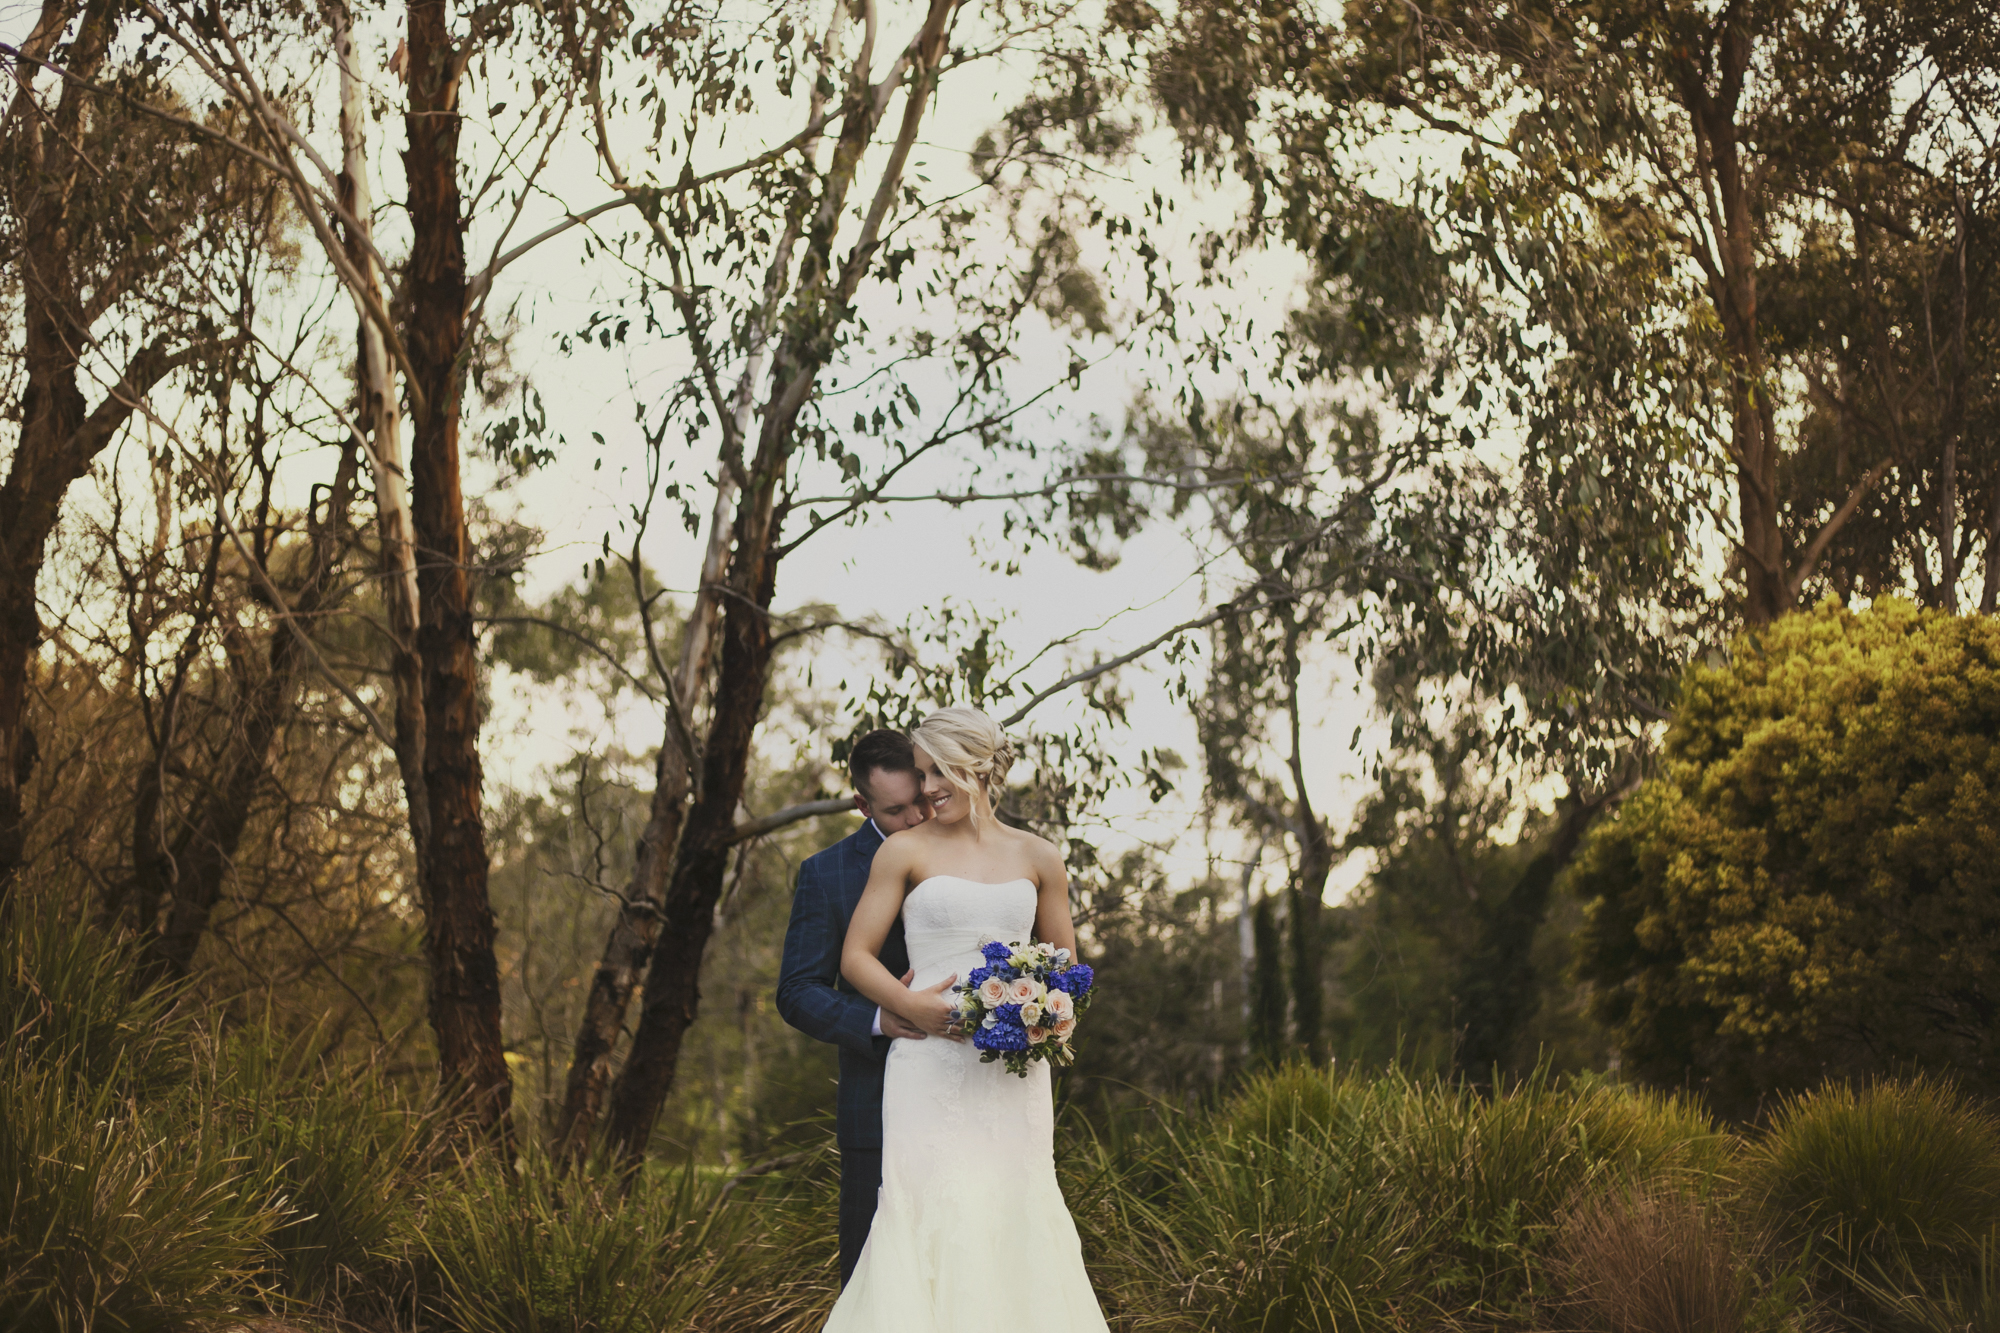 Teodora Tinc Melbourne Wedding Photography_0044.jpg